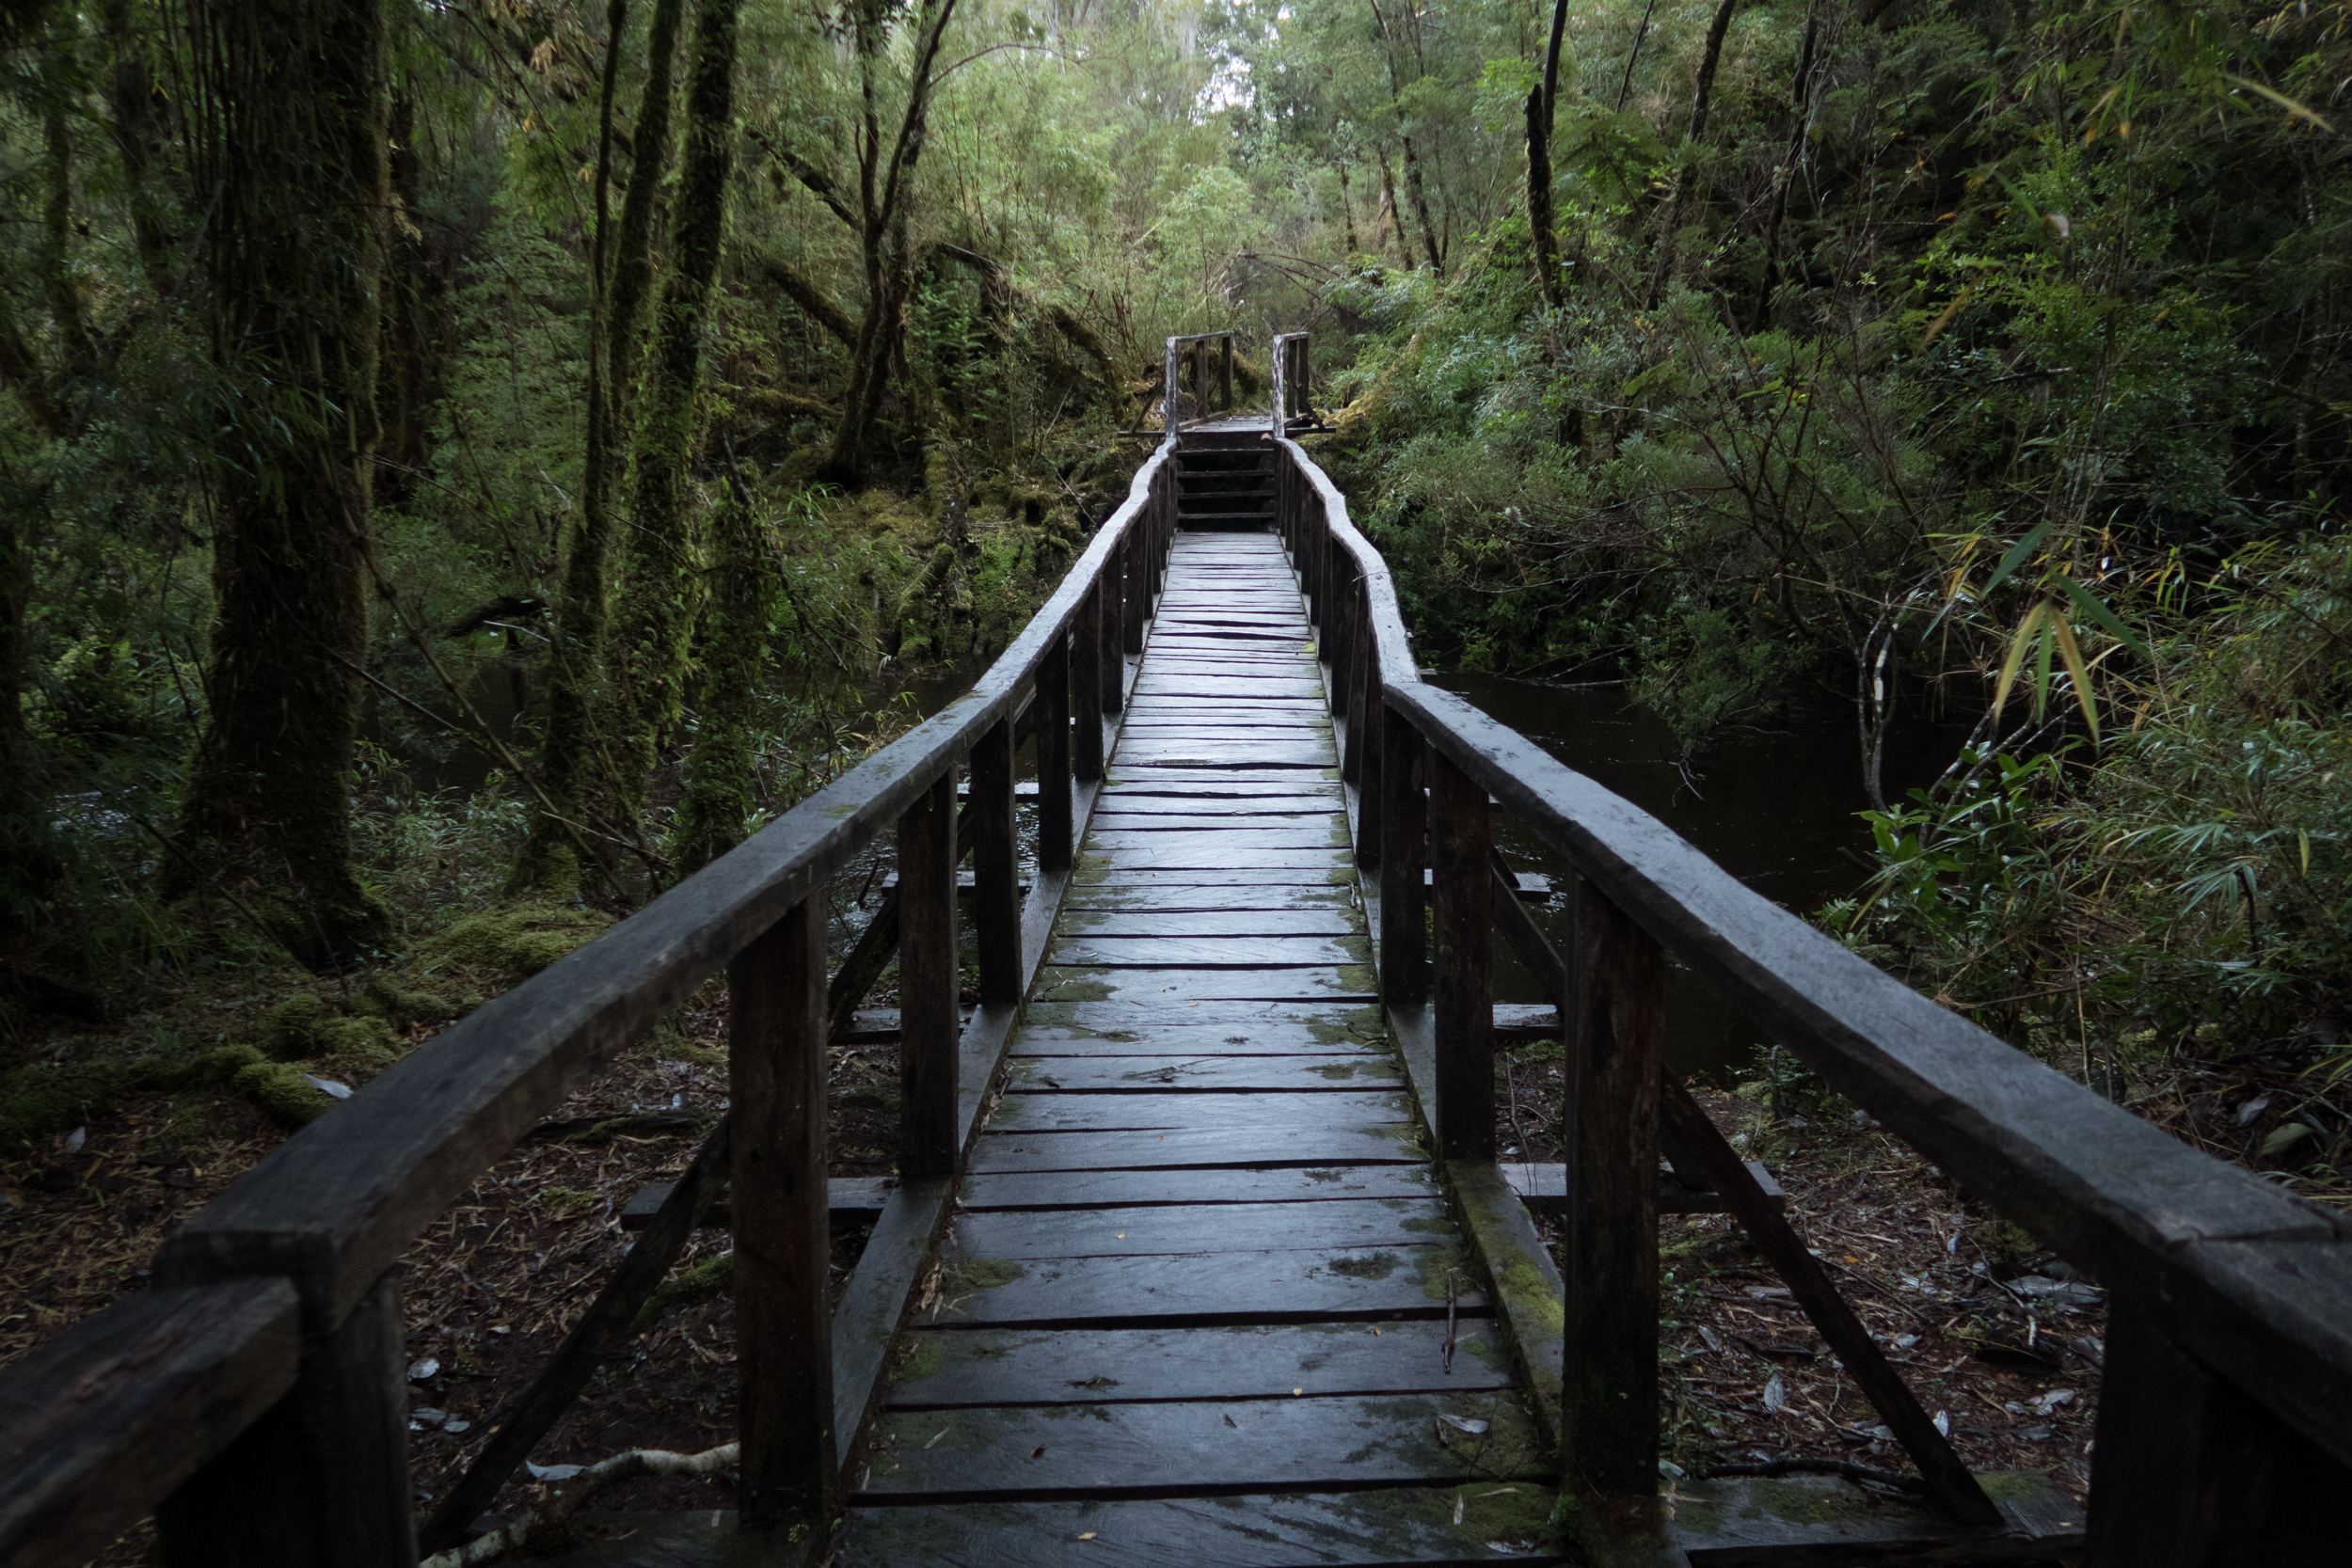 One of the boardwalk sections on the trail